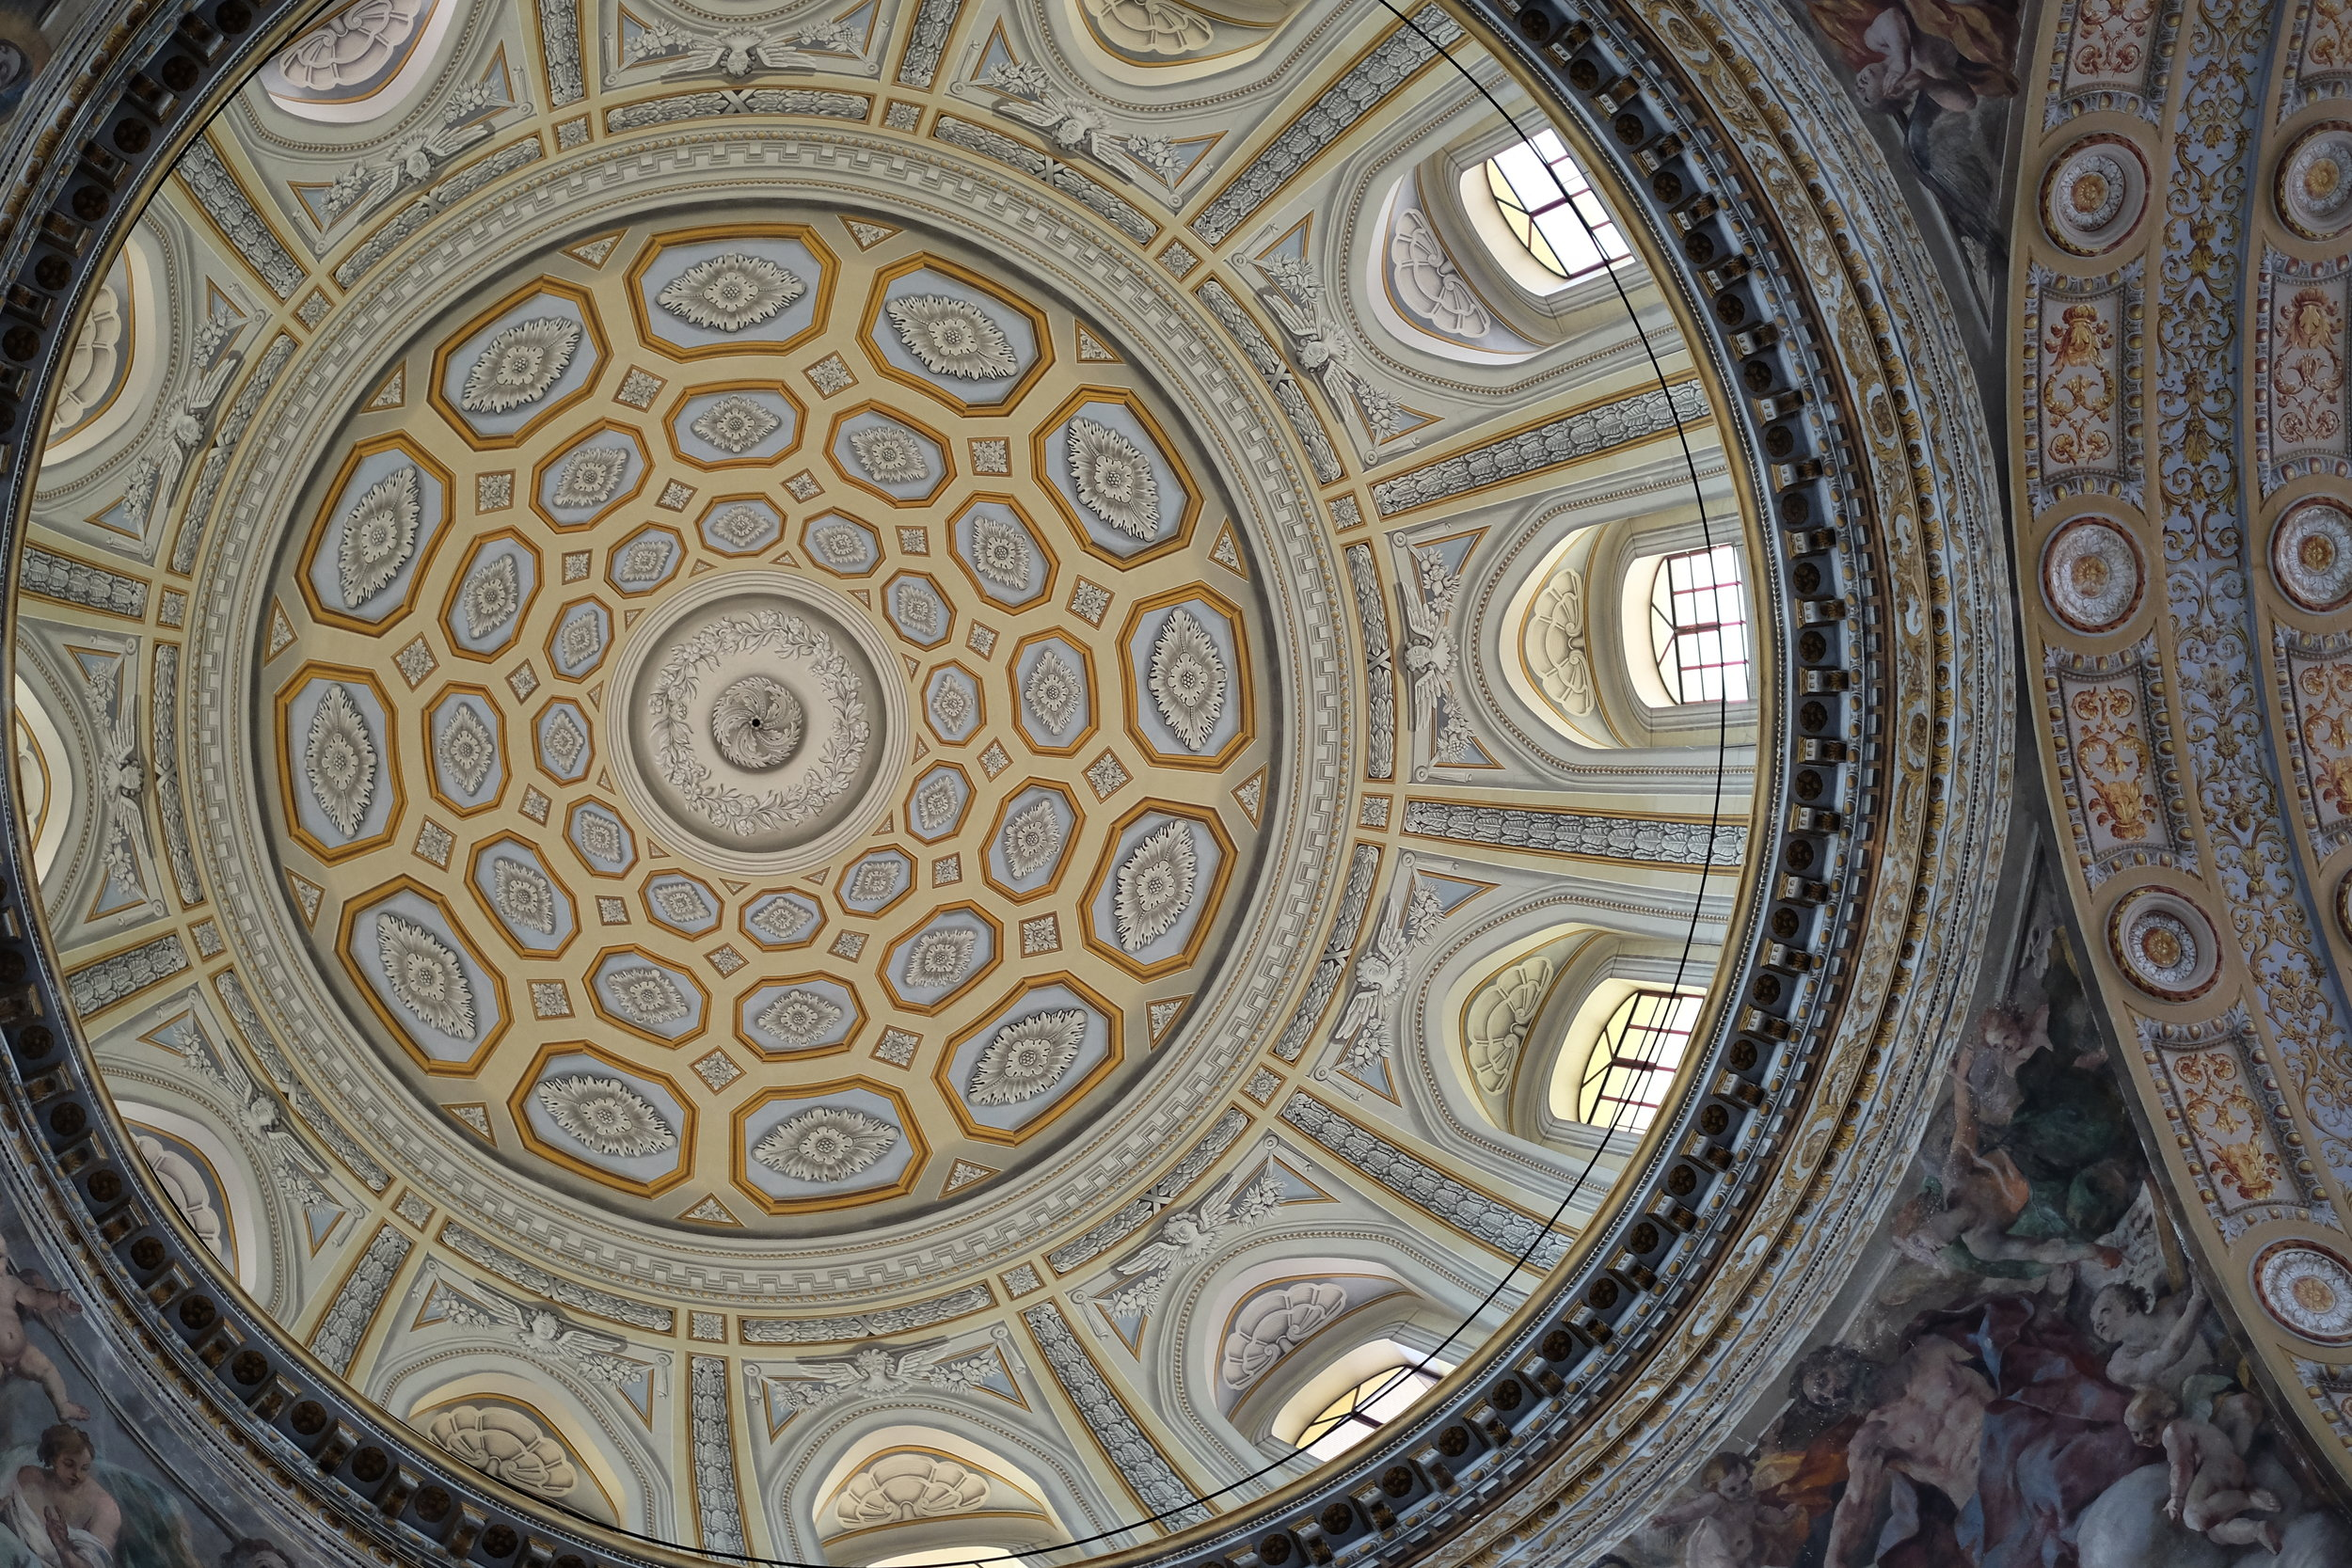 The dome reconstructed after the war, with the frescoes still visible in the corner arches, by Giovanni Lanfranco.